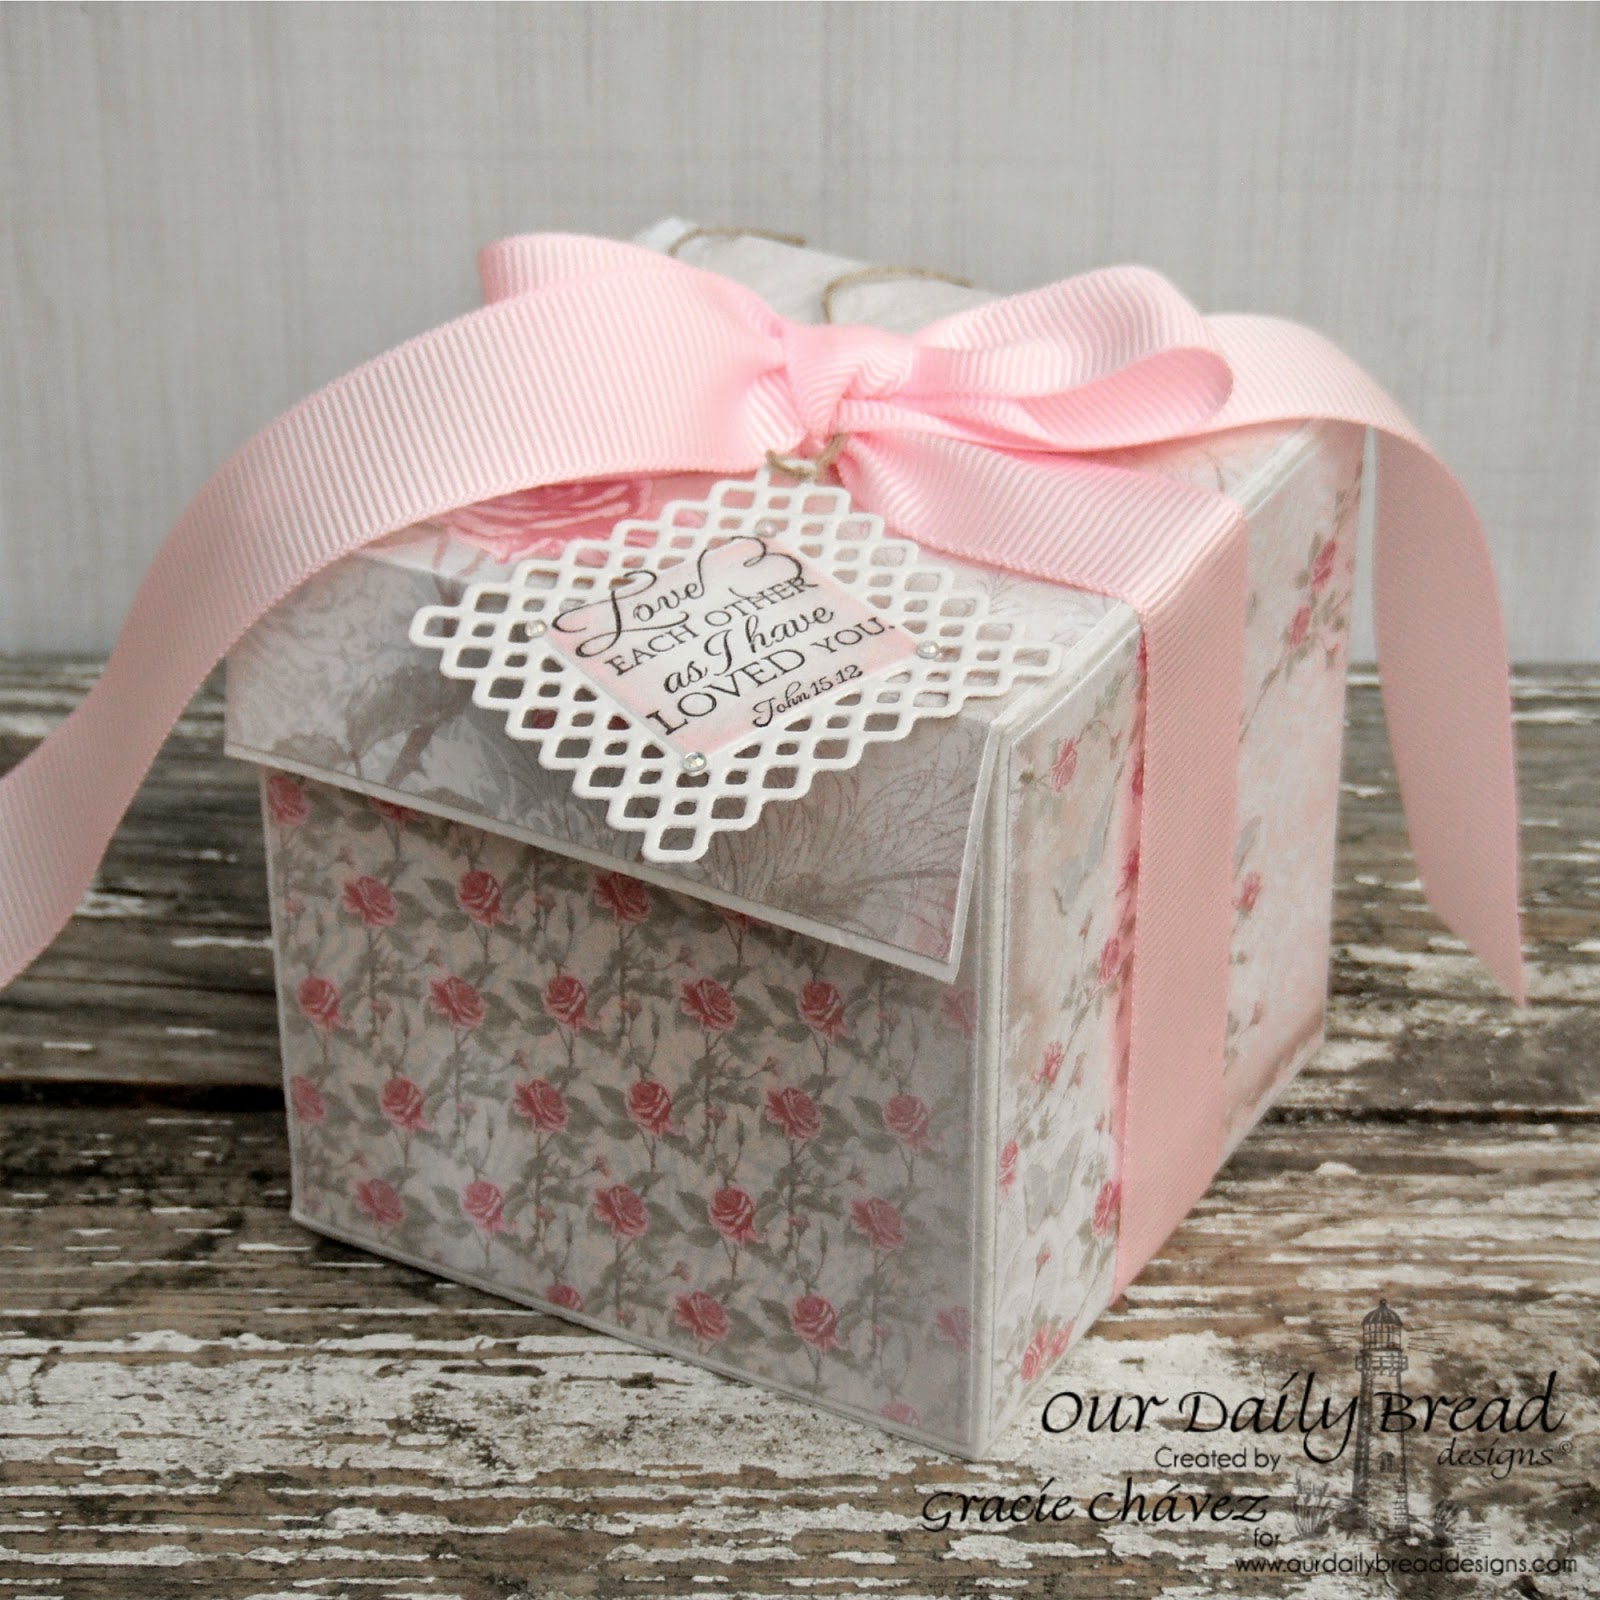 Our Daily Bread Designs, Bless your Heart, Shabby Rose Collection, Layered Lacey Squares, Designed by Gracie Chávez